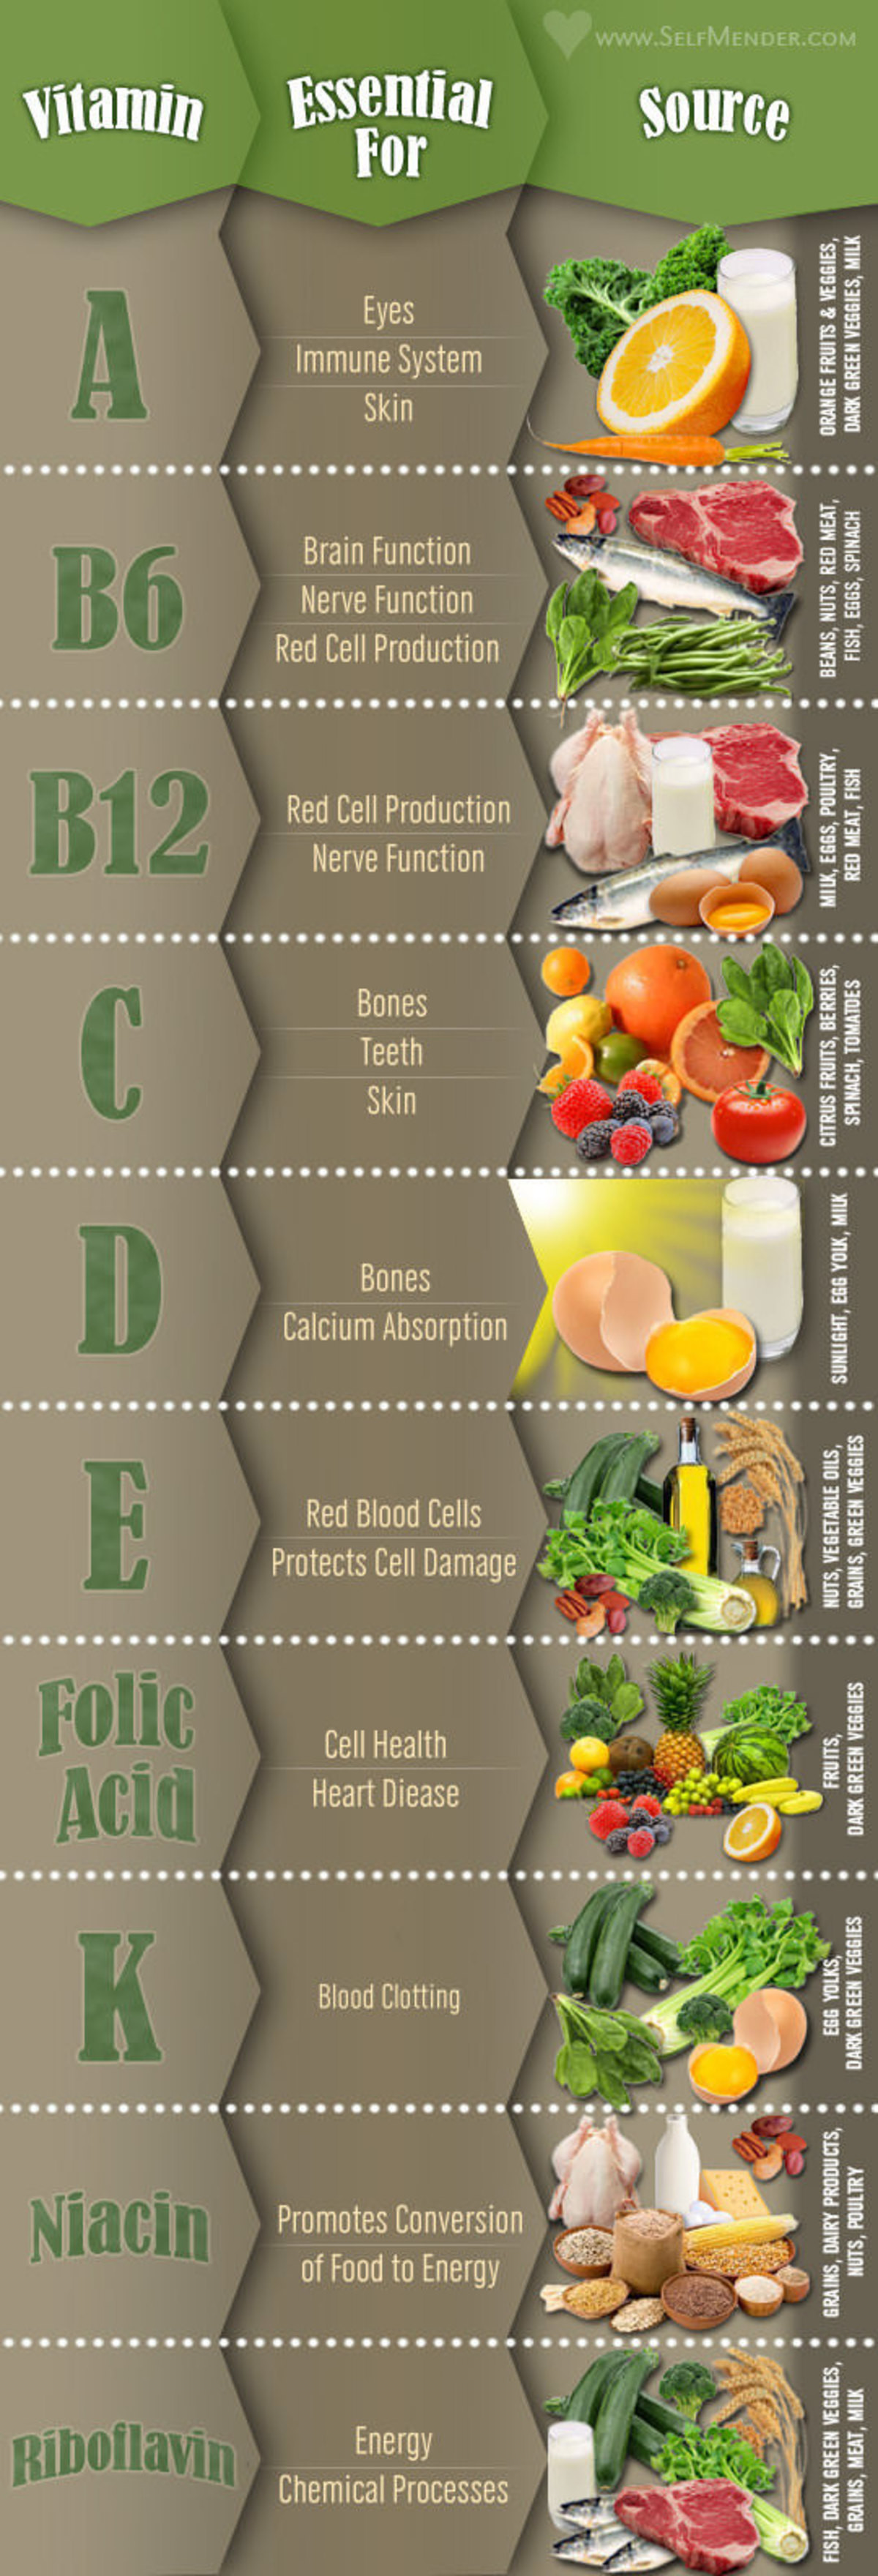 Guide To Essential Vitamins & Their Food Sources